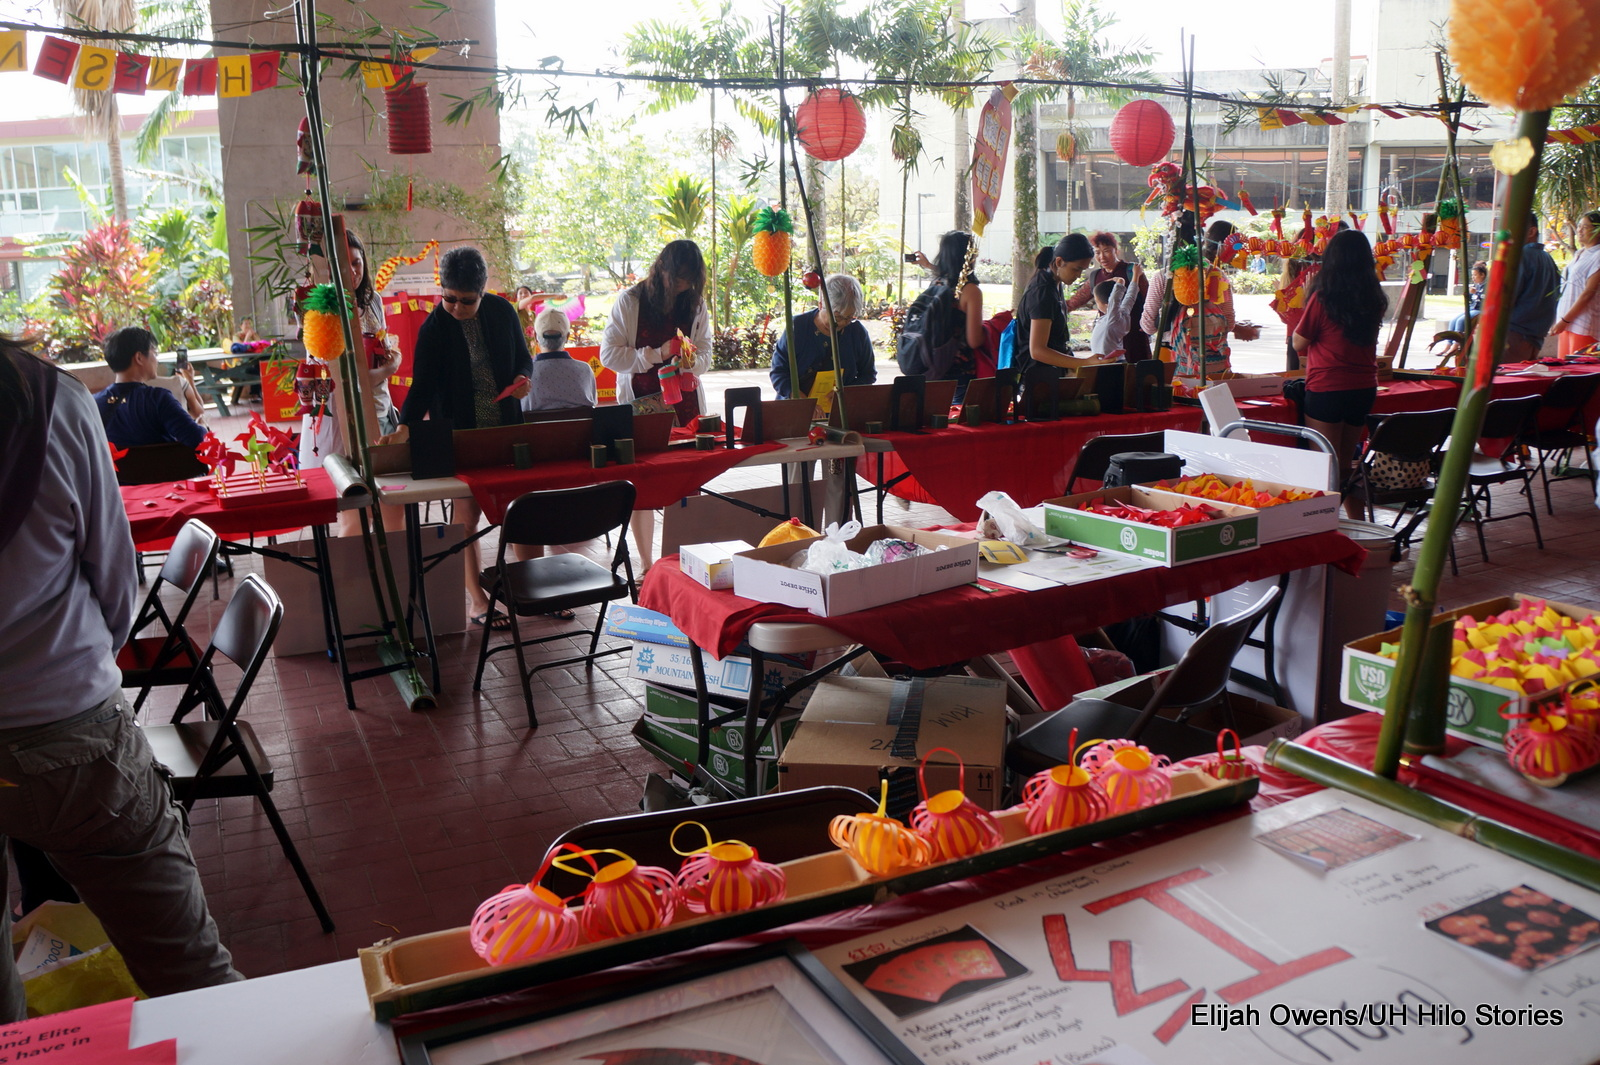 Display tables, lots of red fabrics and paper, dangling Chinese lanterns.